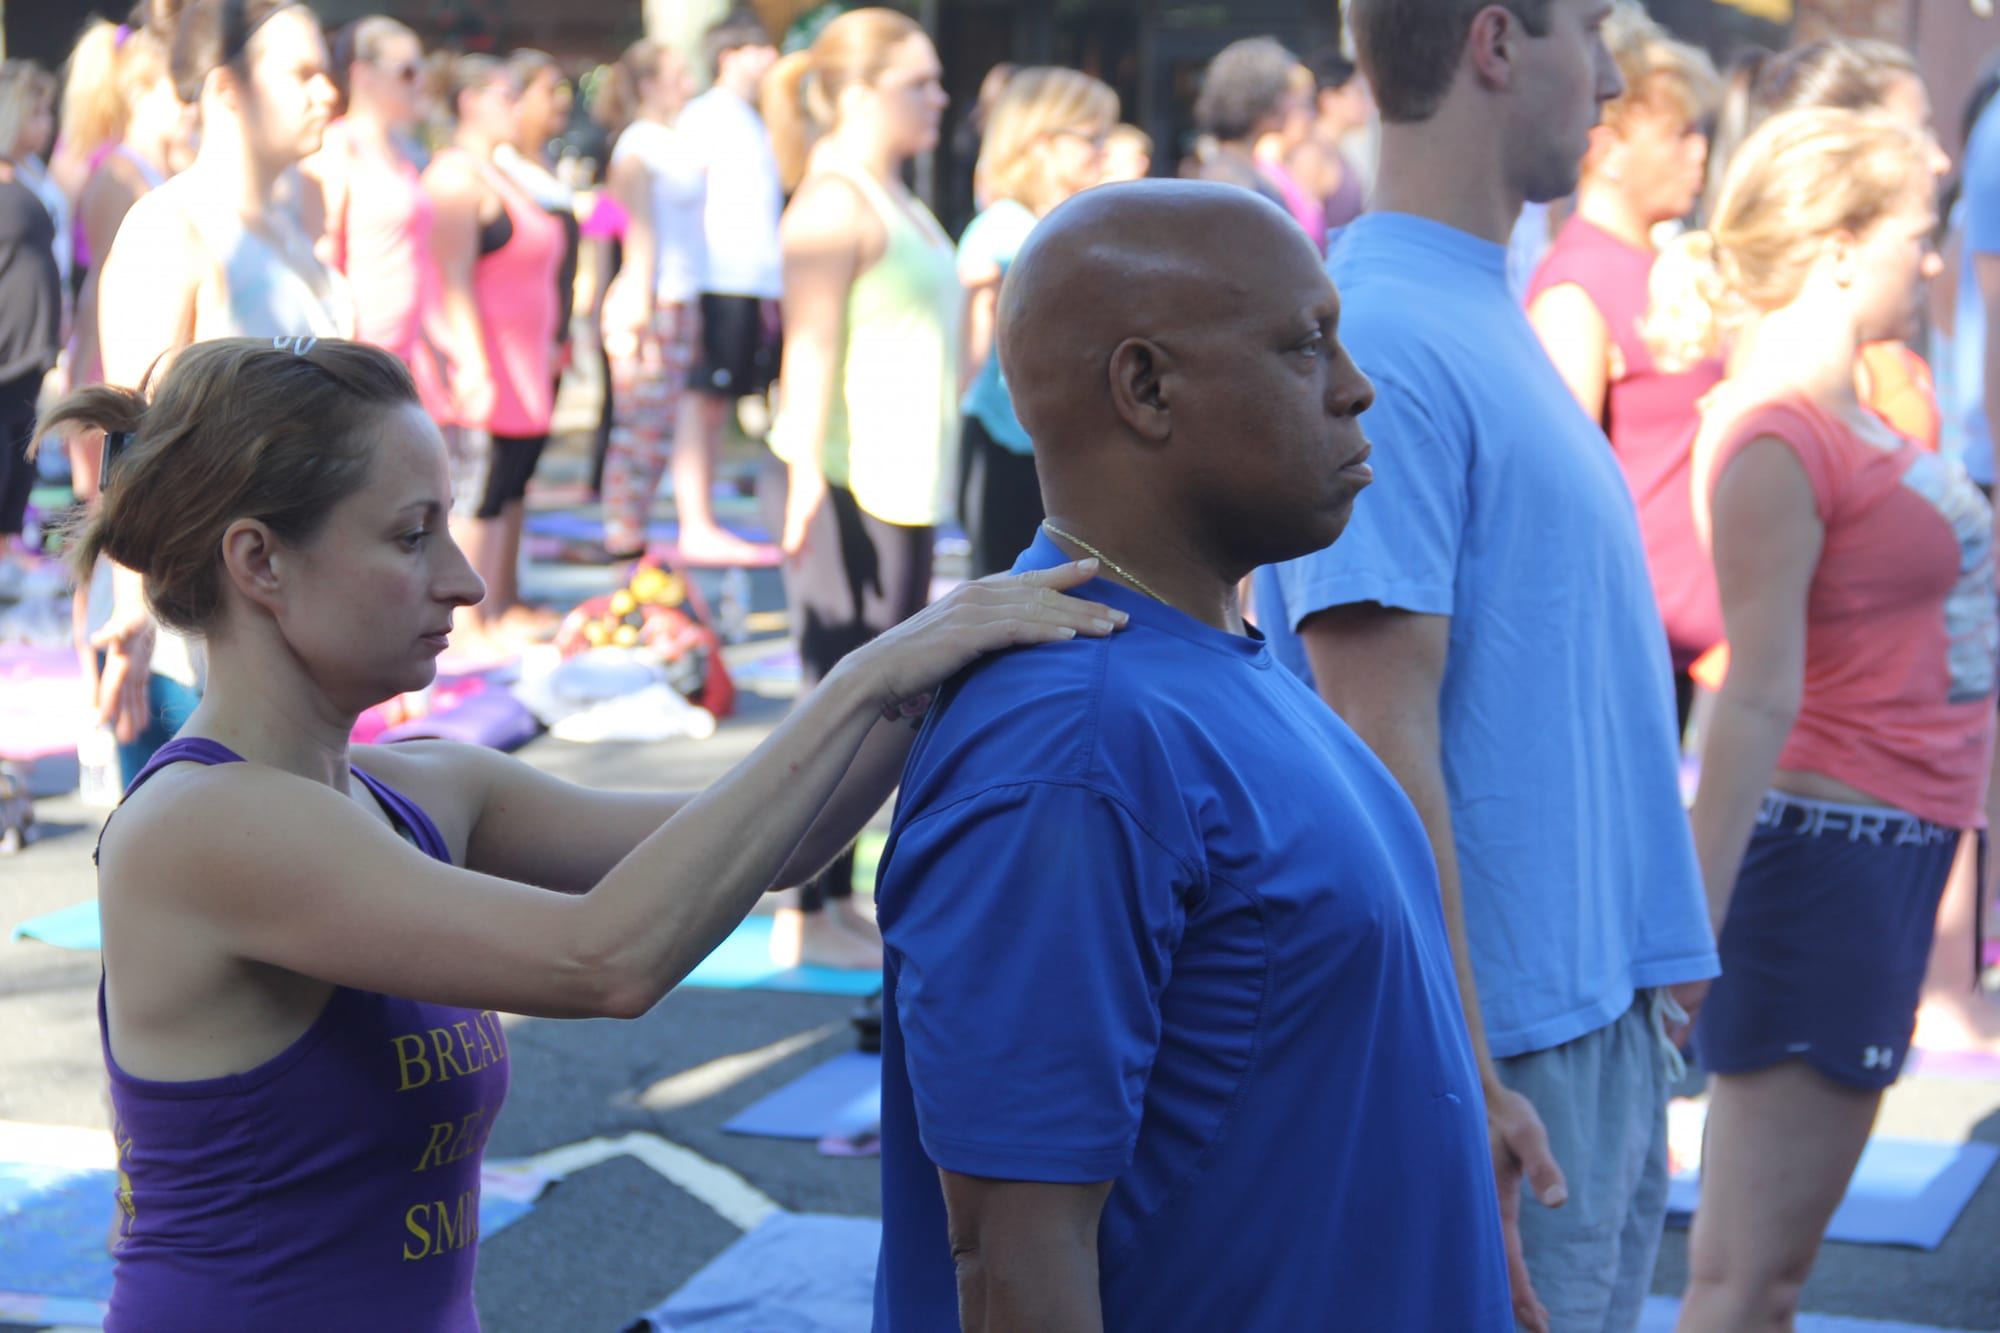 Om Street 2015, presented by West Hartford Yoga on LaSalle Road, July 25, 2015. Photo by Amy Melvin